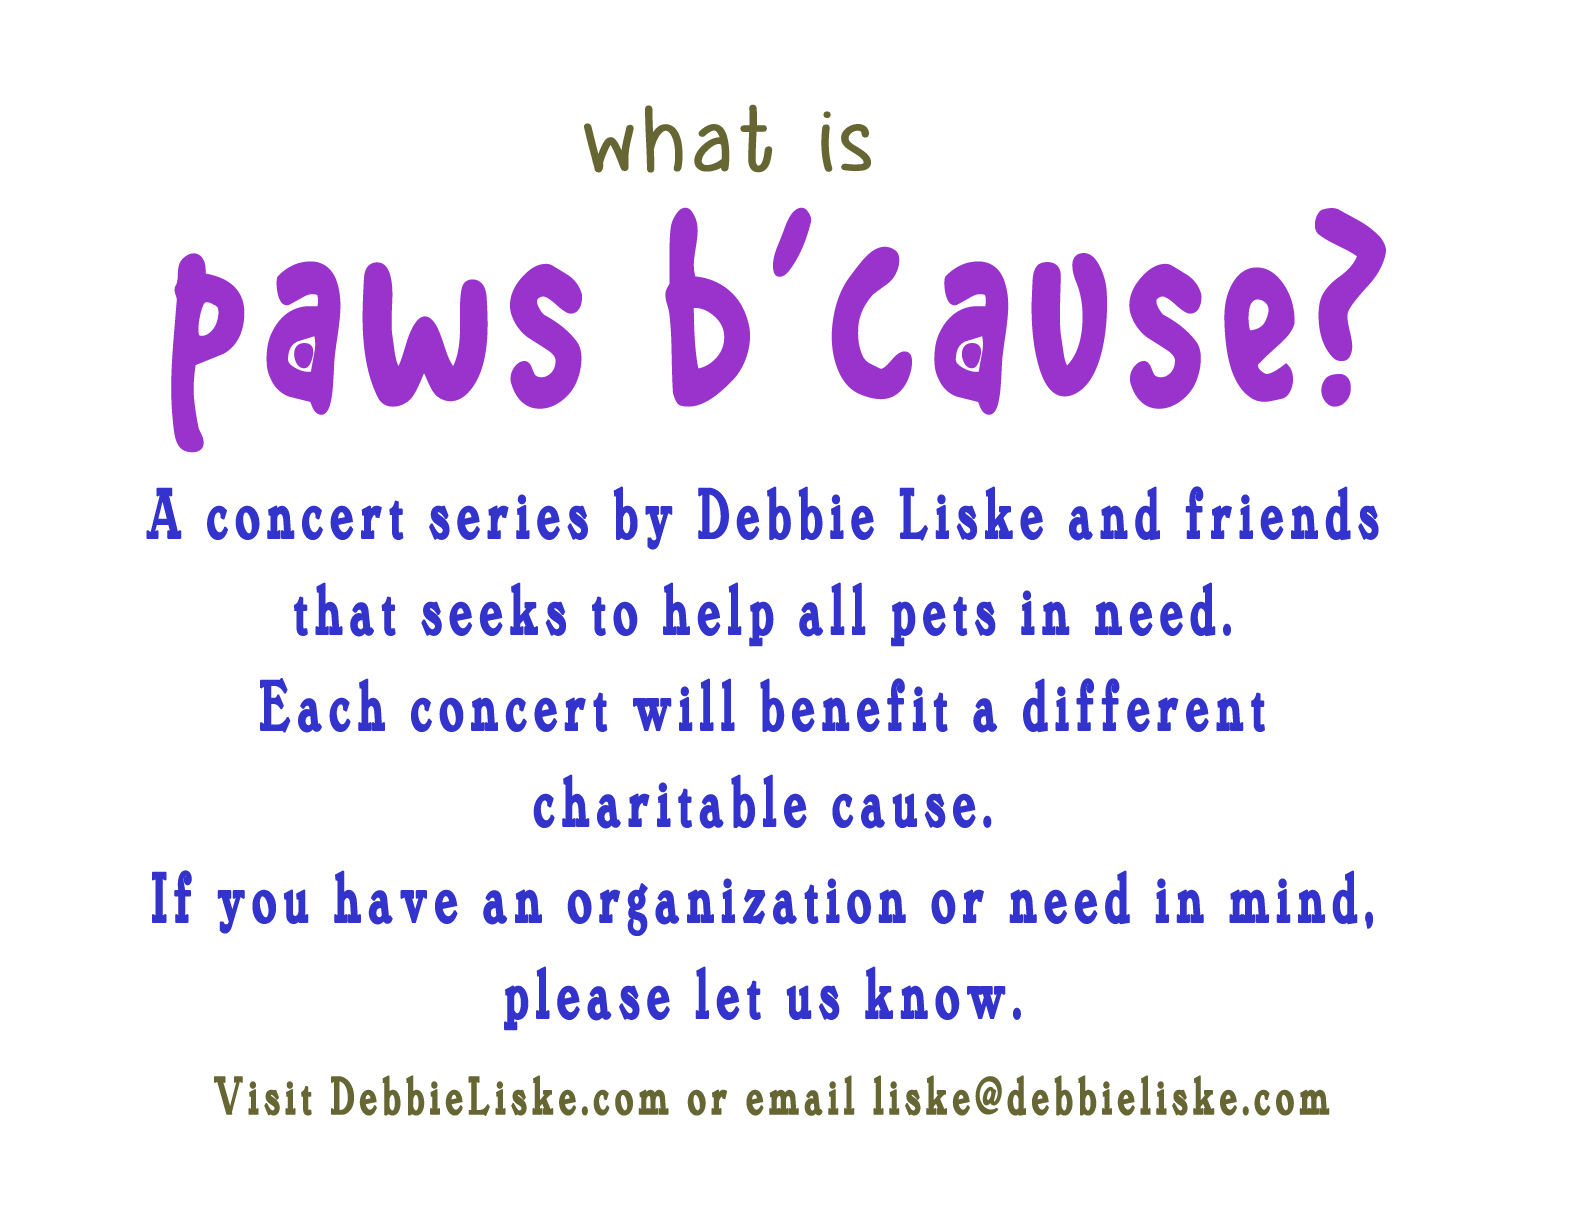 What Is paws b'cause?